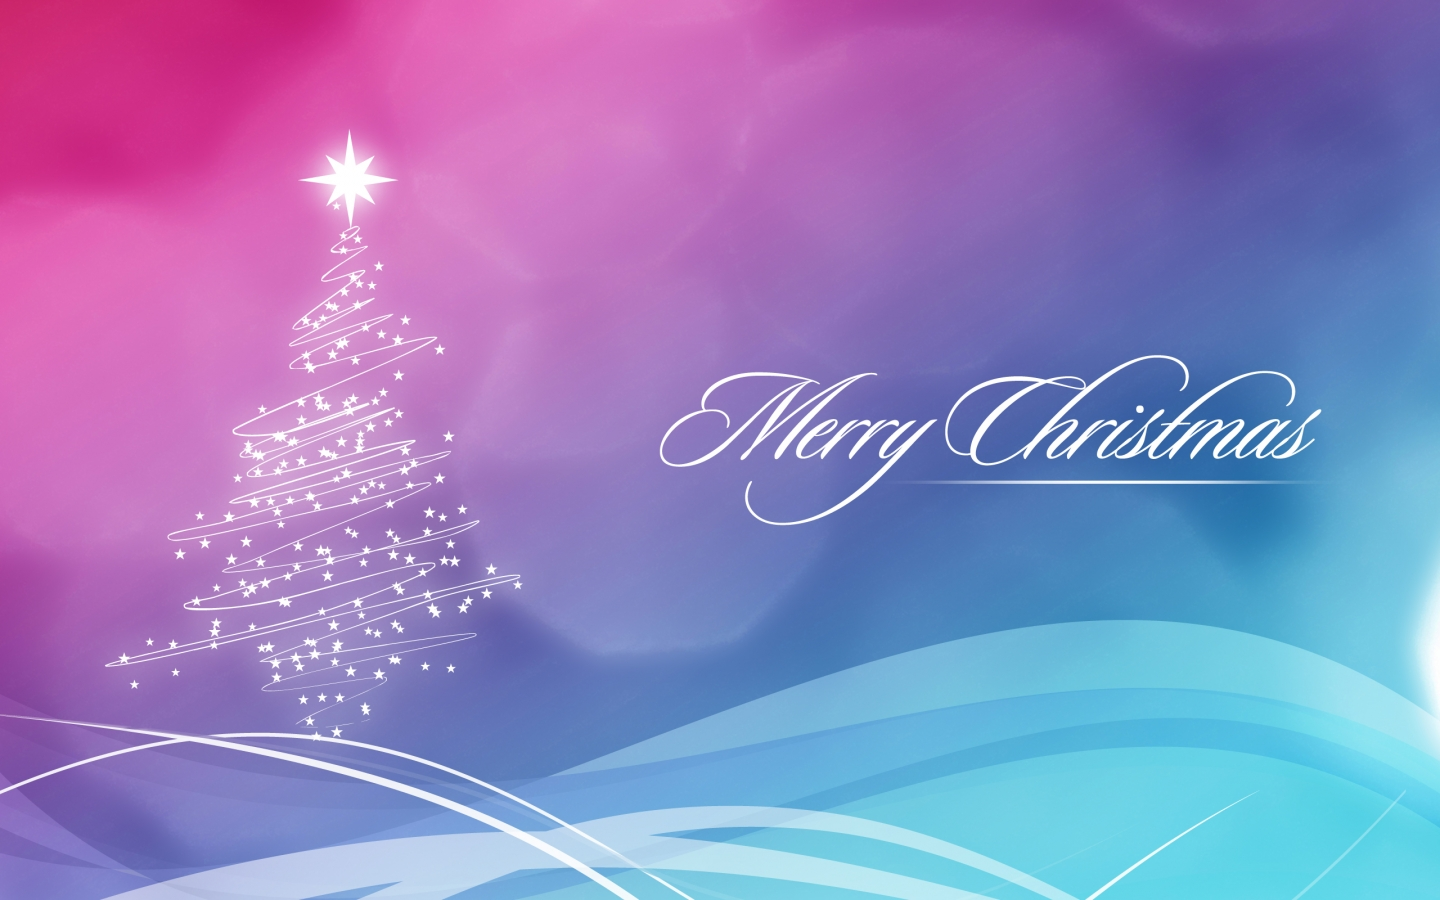 merry christmas wallpaper picturespool happy christmas 2013 merry wallpapers